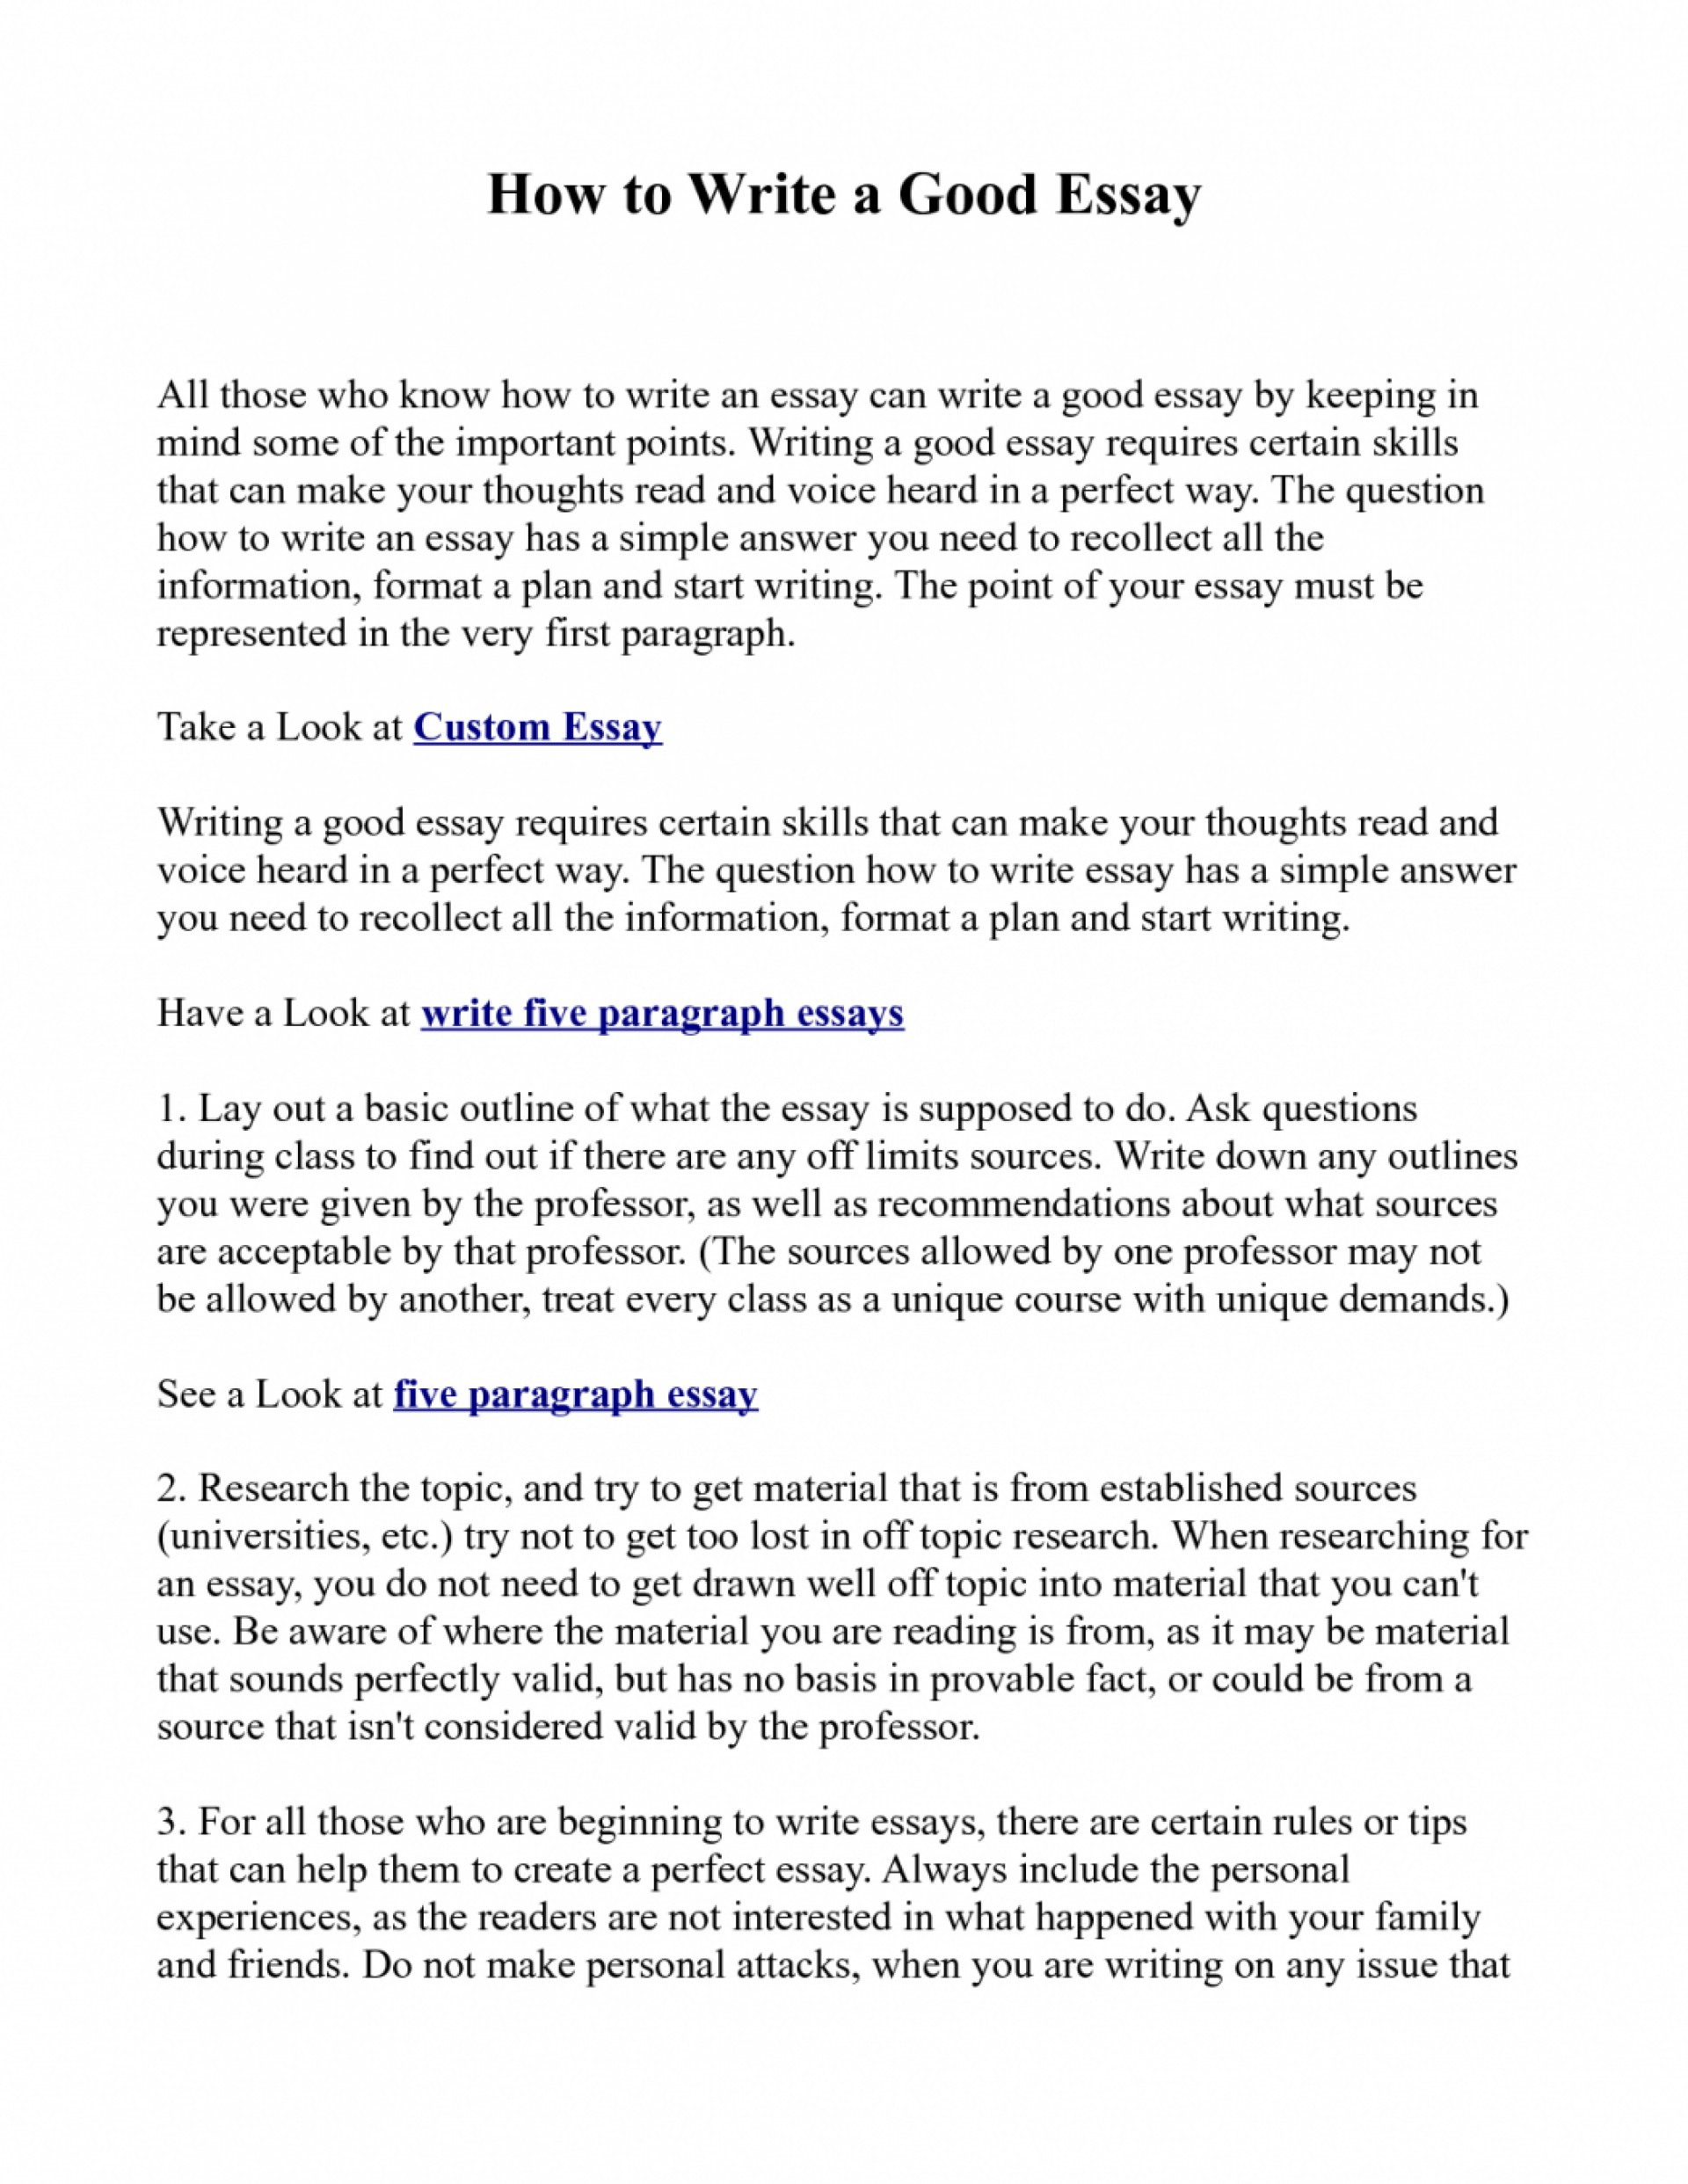 006 Write Essays How To An Excellent Essay The Perfect Easy Way Ex1id Best 1048x1356 Astounding A Poetry For Ap Lit About Yourself Paper In Spanish On Word 1920